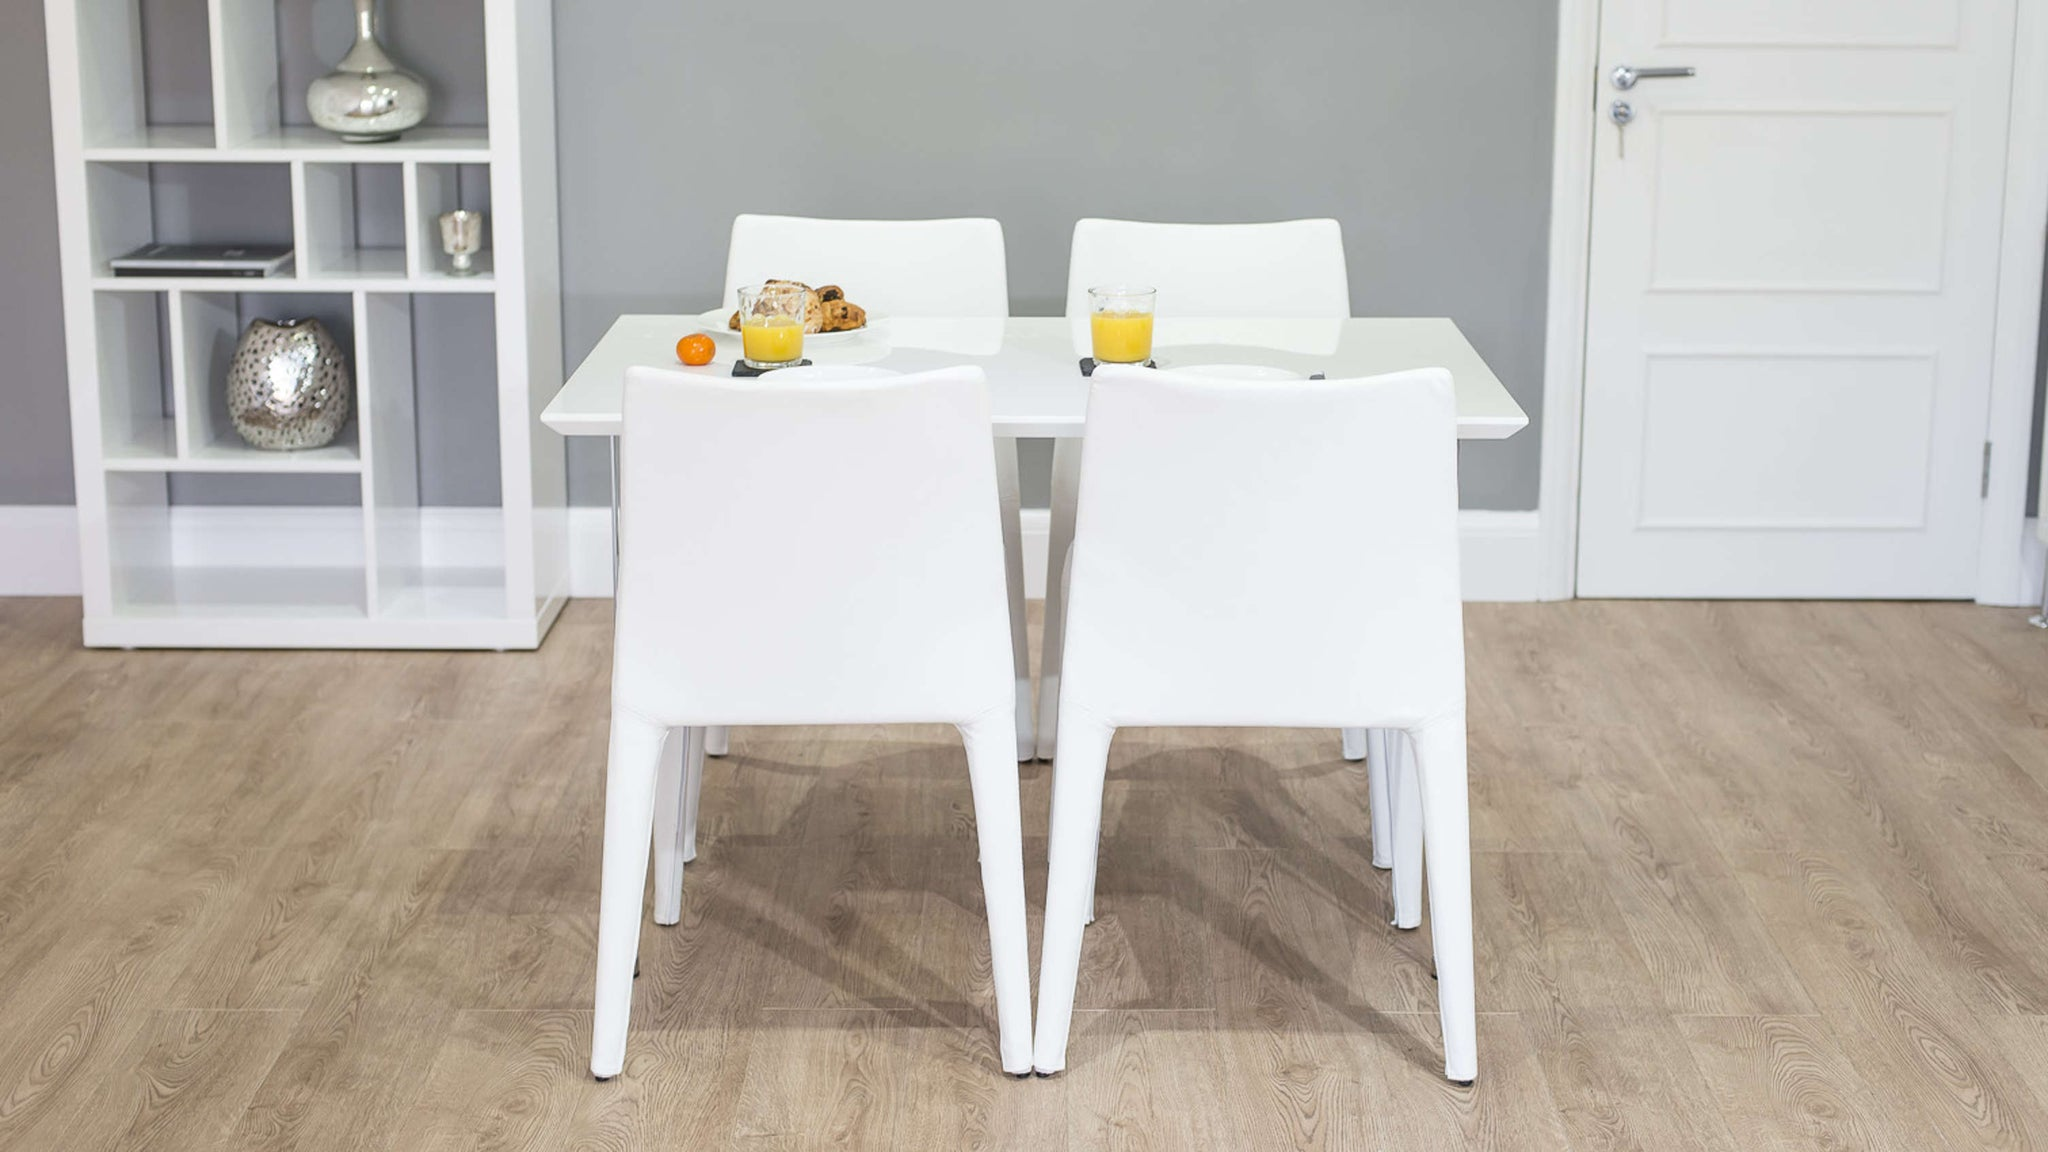 Rectangular Kitchen Dining Table and White Dining Chairs